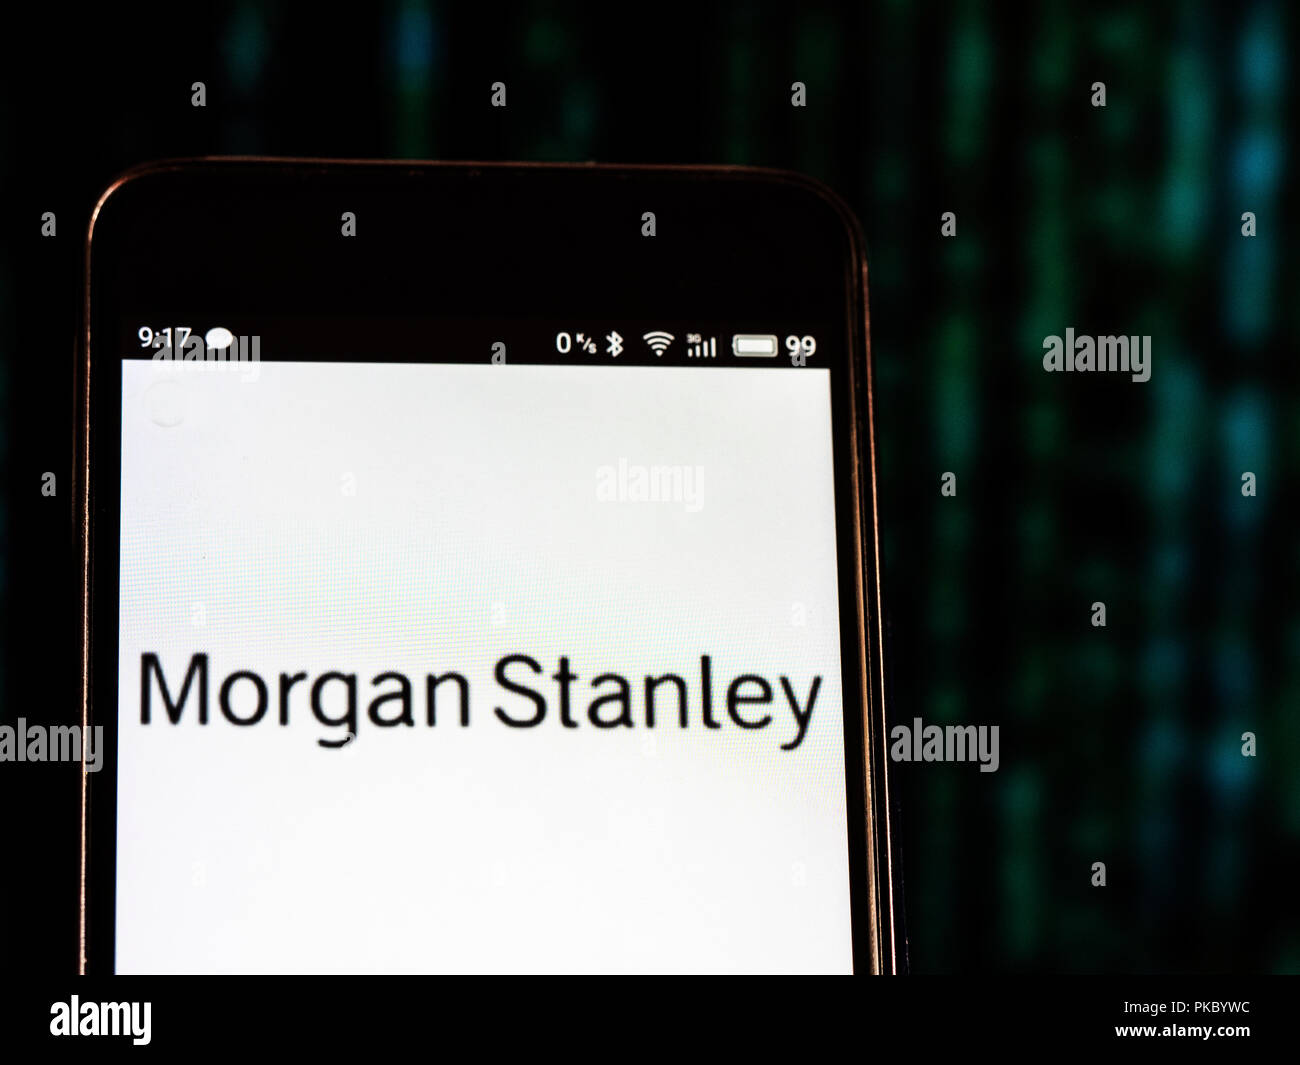 Morgan Stanley logo seen displayed on smart phone Stock Photo